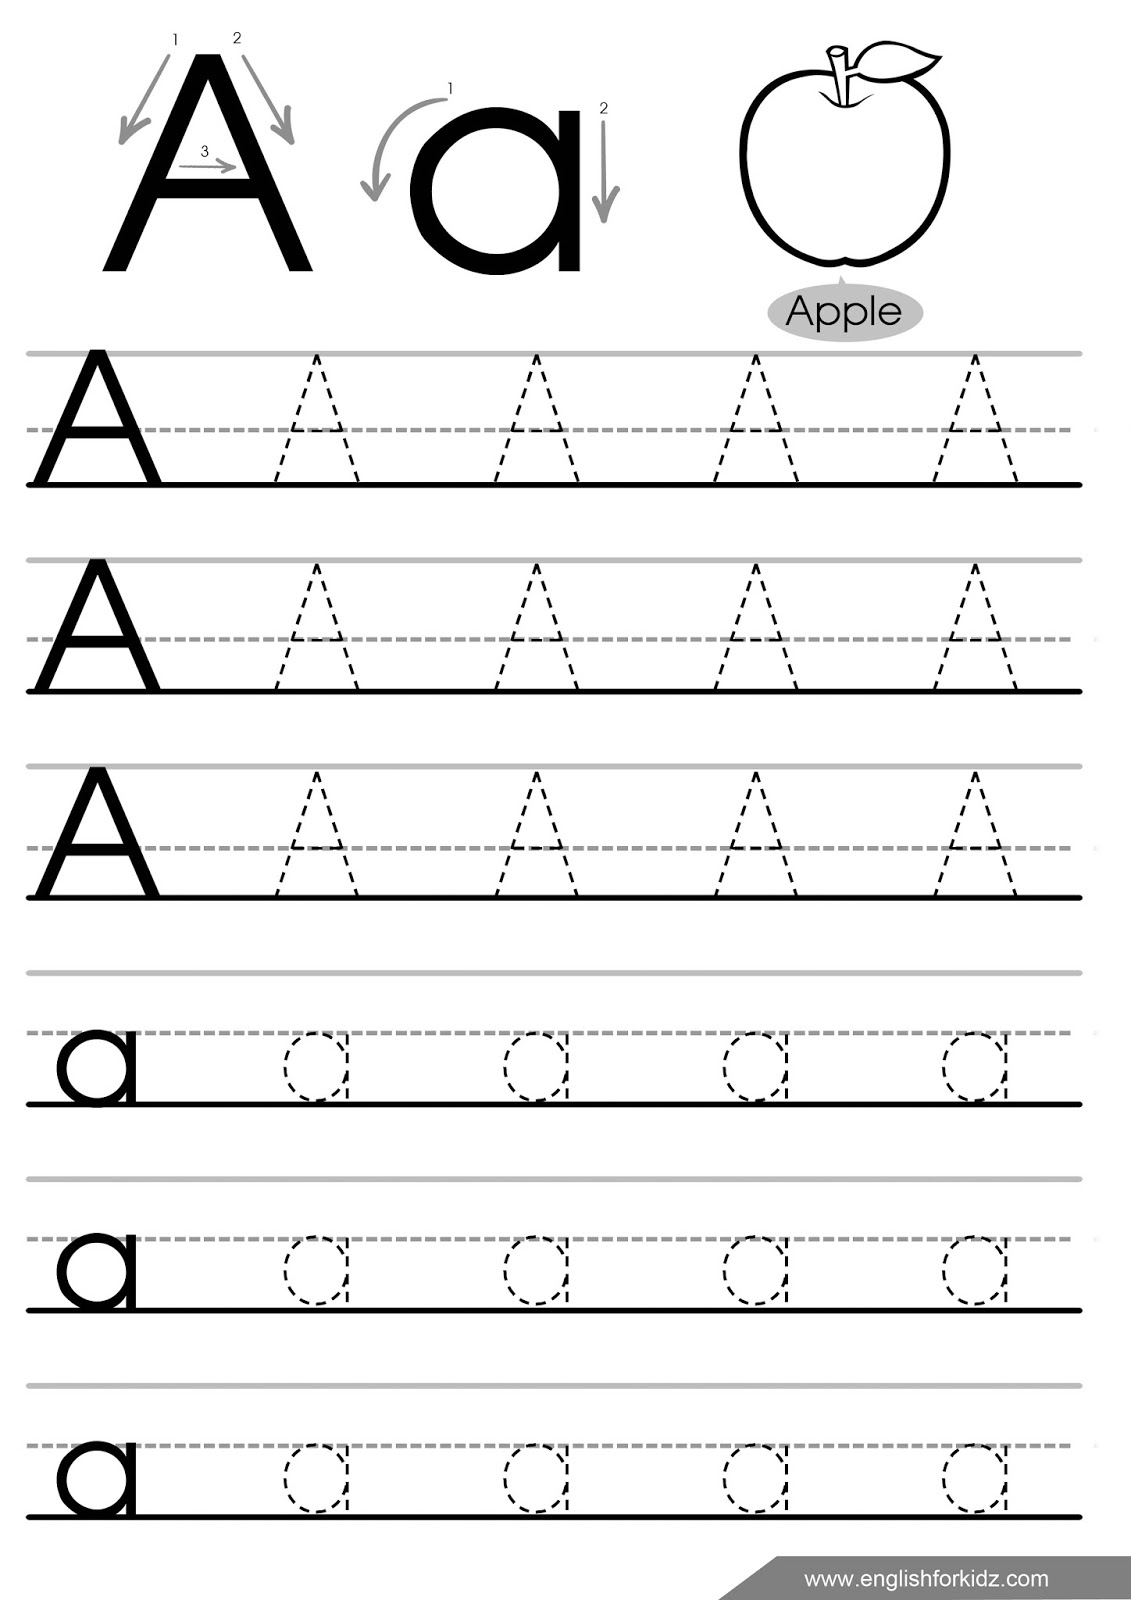 Math Worksheet : Alphabet Tracing Worksheets For with Alphabet Tracing Sheet